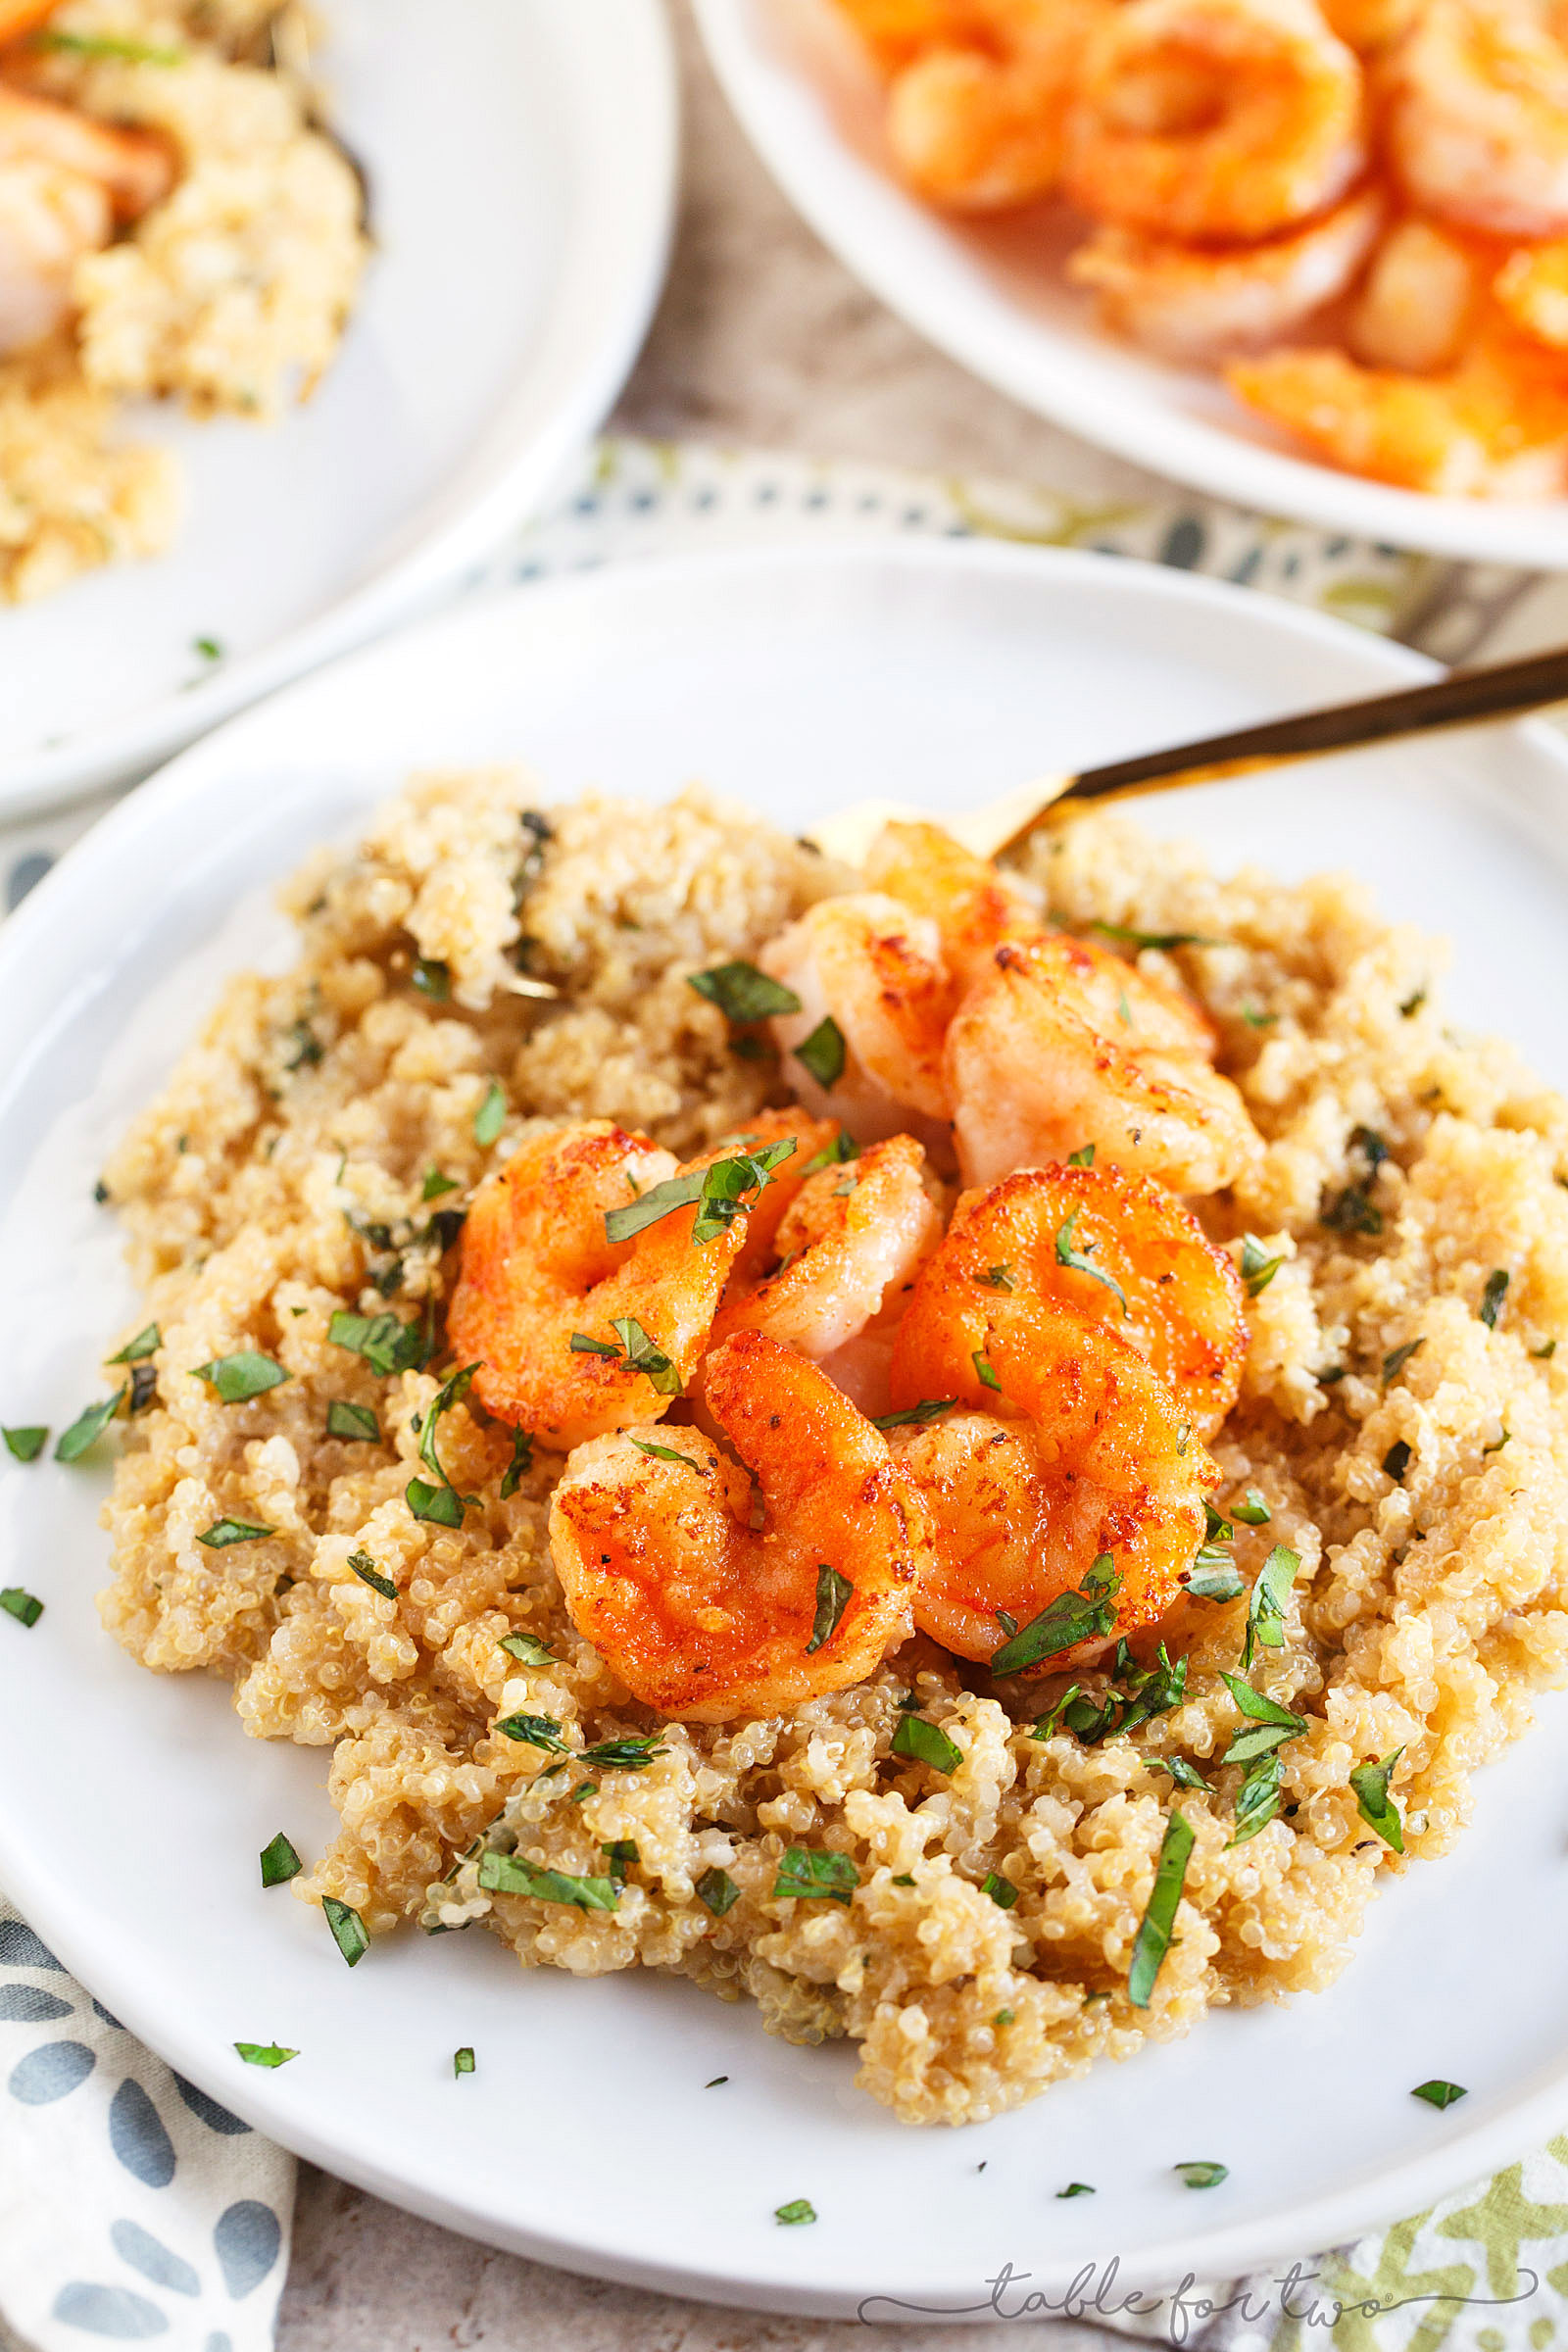 Garlic butter shrimp is a quick and easy weeknight dinner idea! Serve on top of quinoa and you've got yourself a complete and healthy meal!